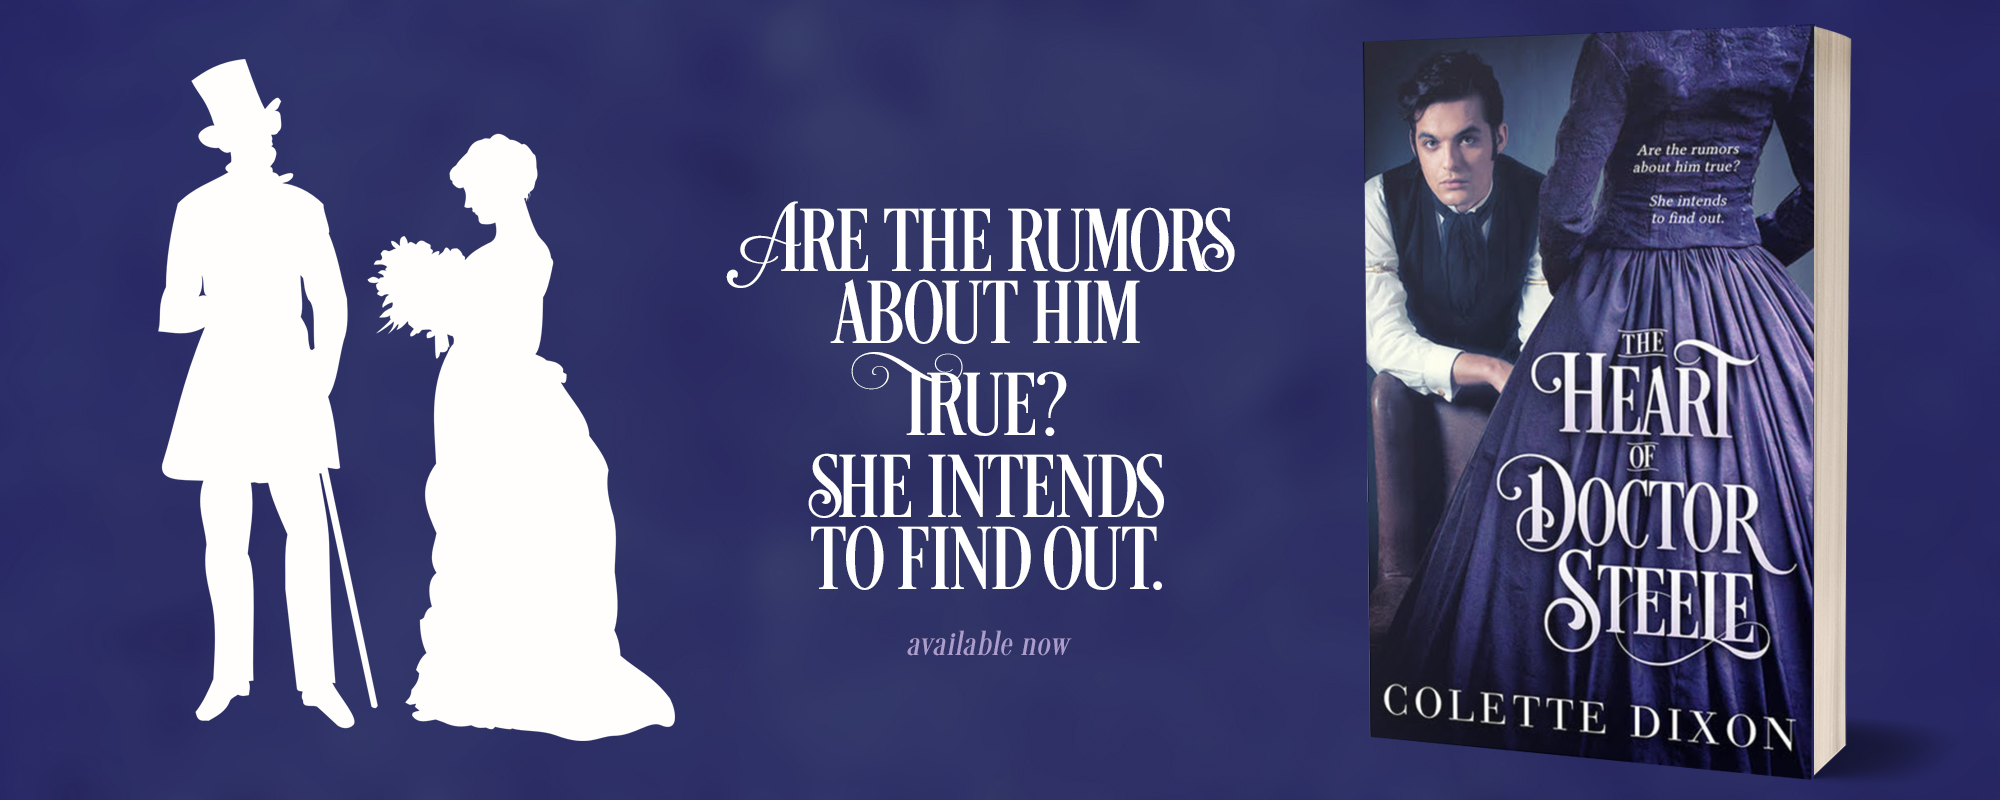 The Heart of Doctor Steele by Colette Dixon, available now